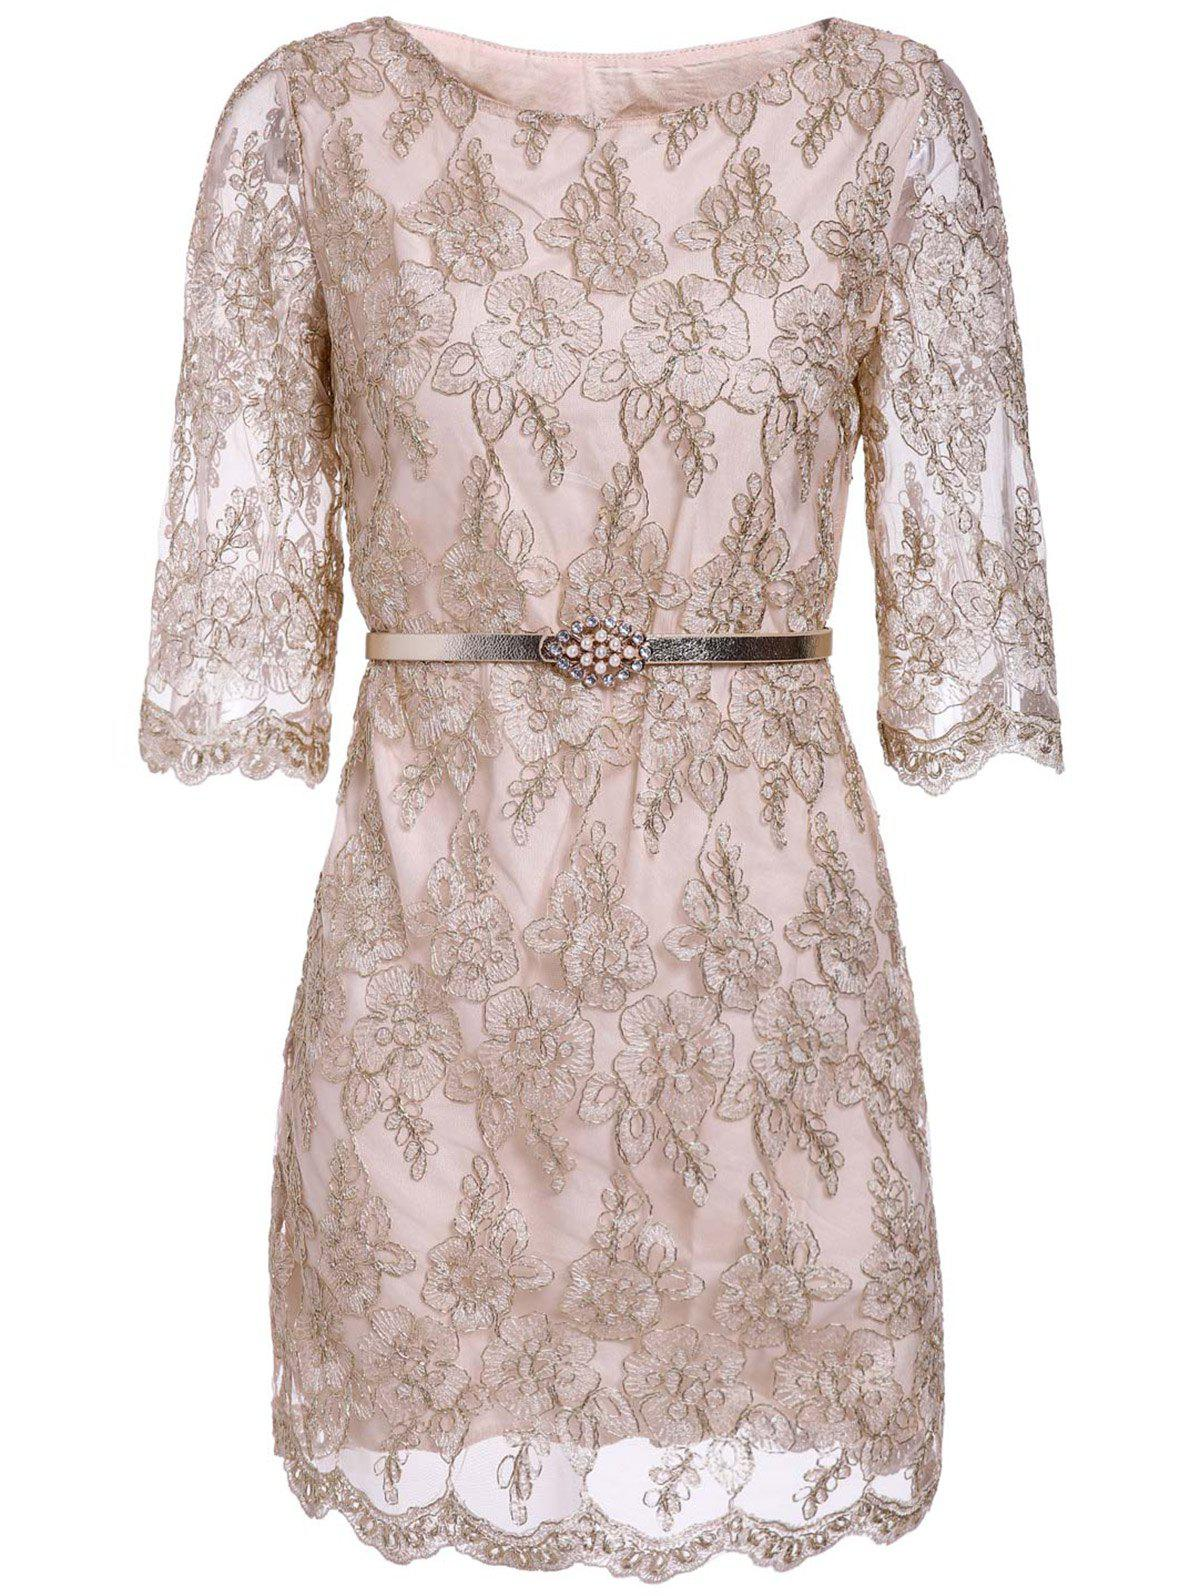 Women's Graceful Gold Thread Embroidery Lacework Design Lace Dress With A Belt - APRICOT M